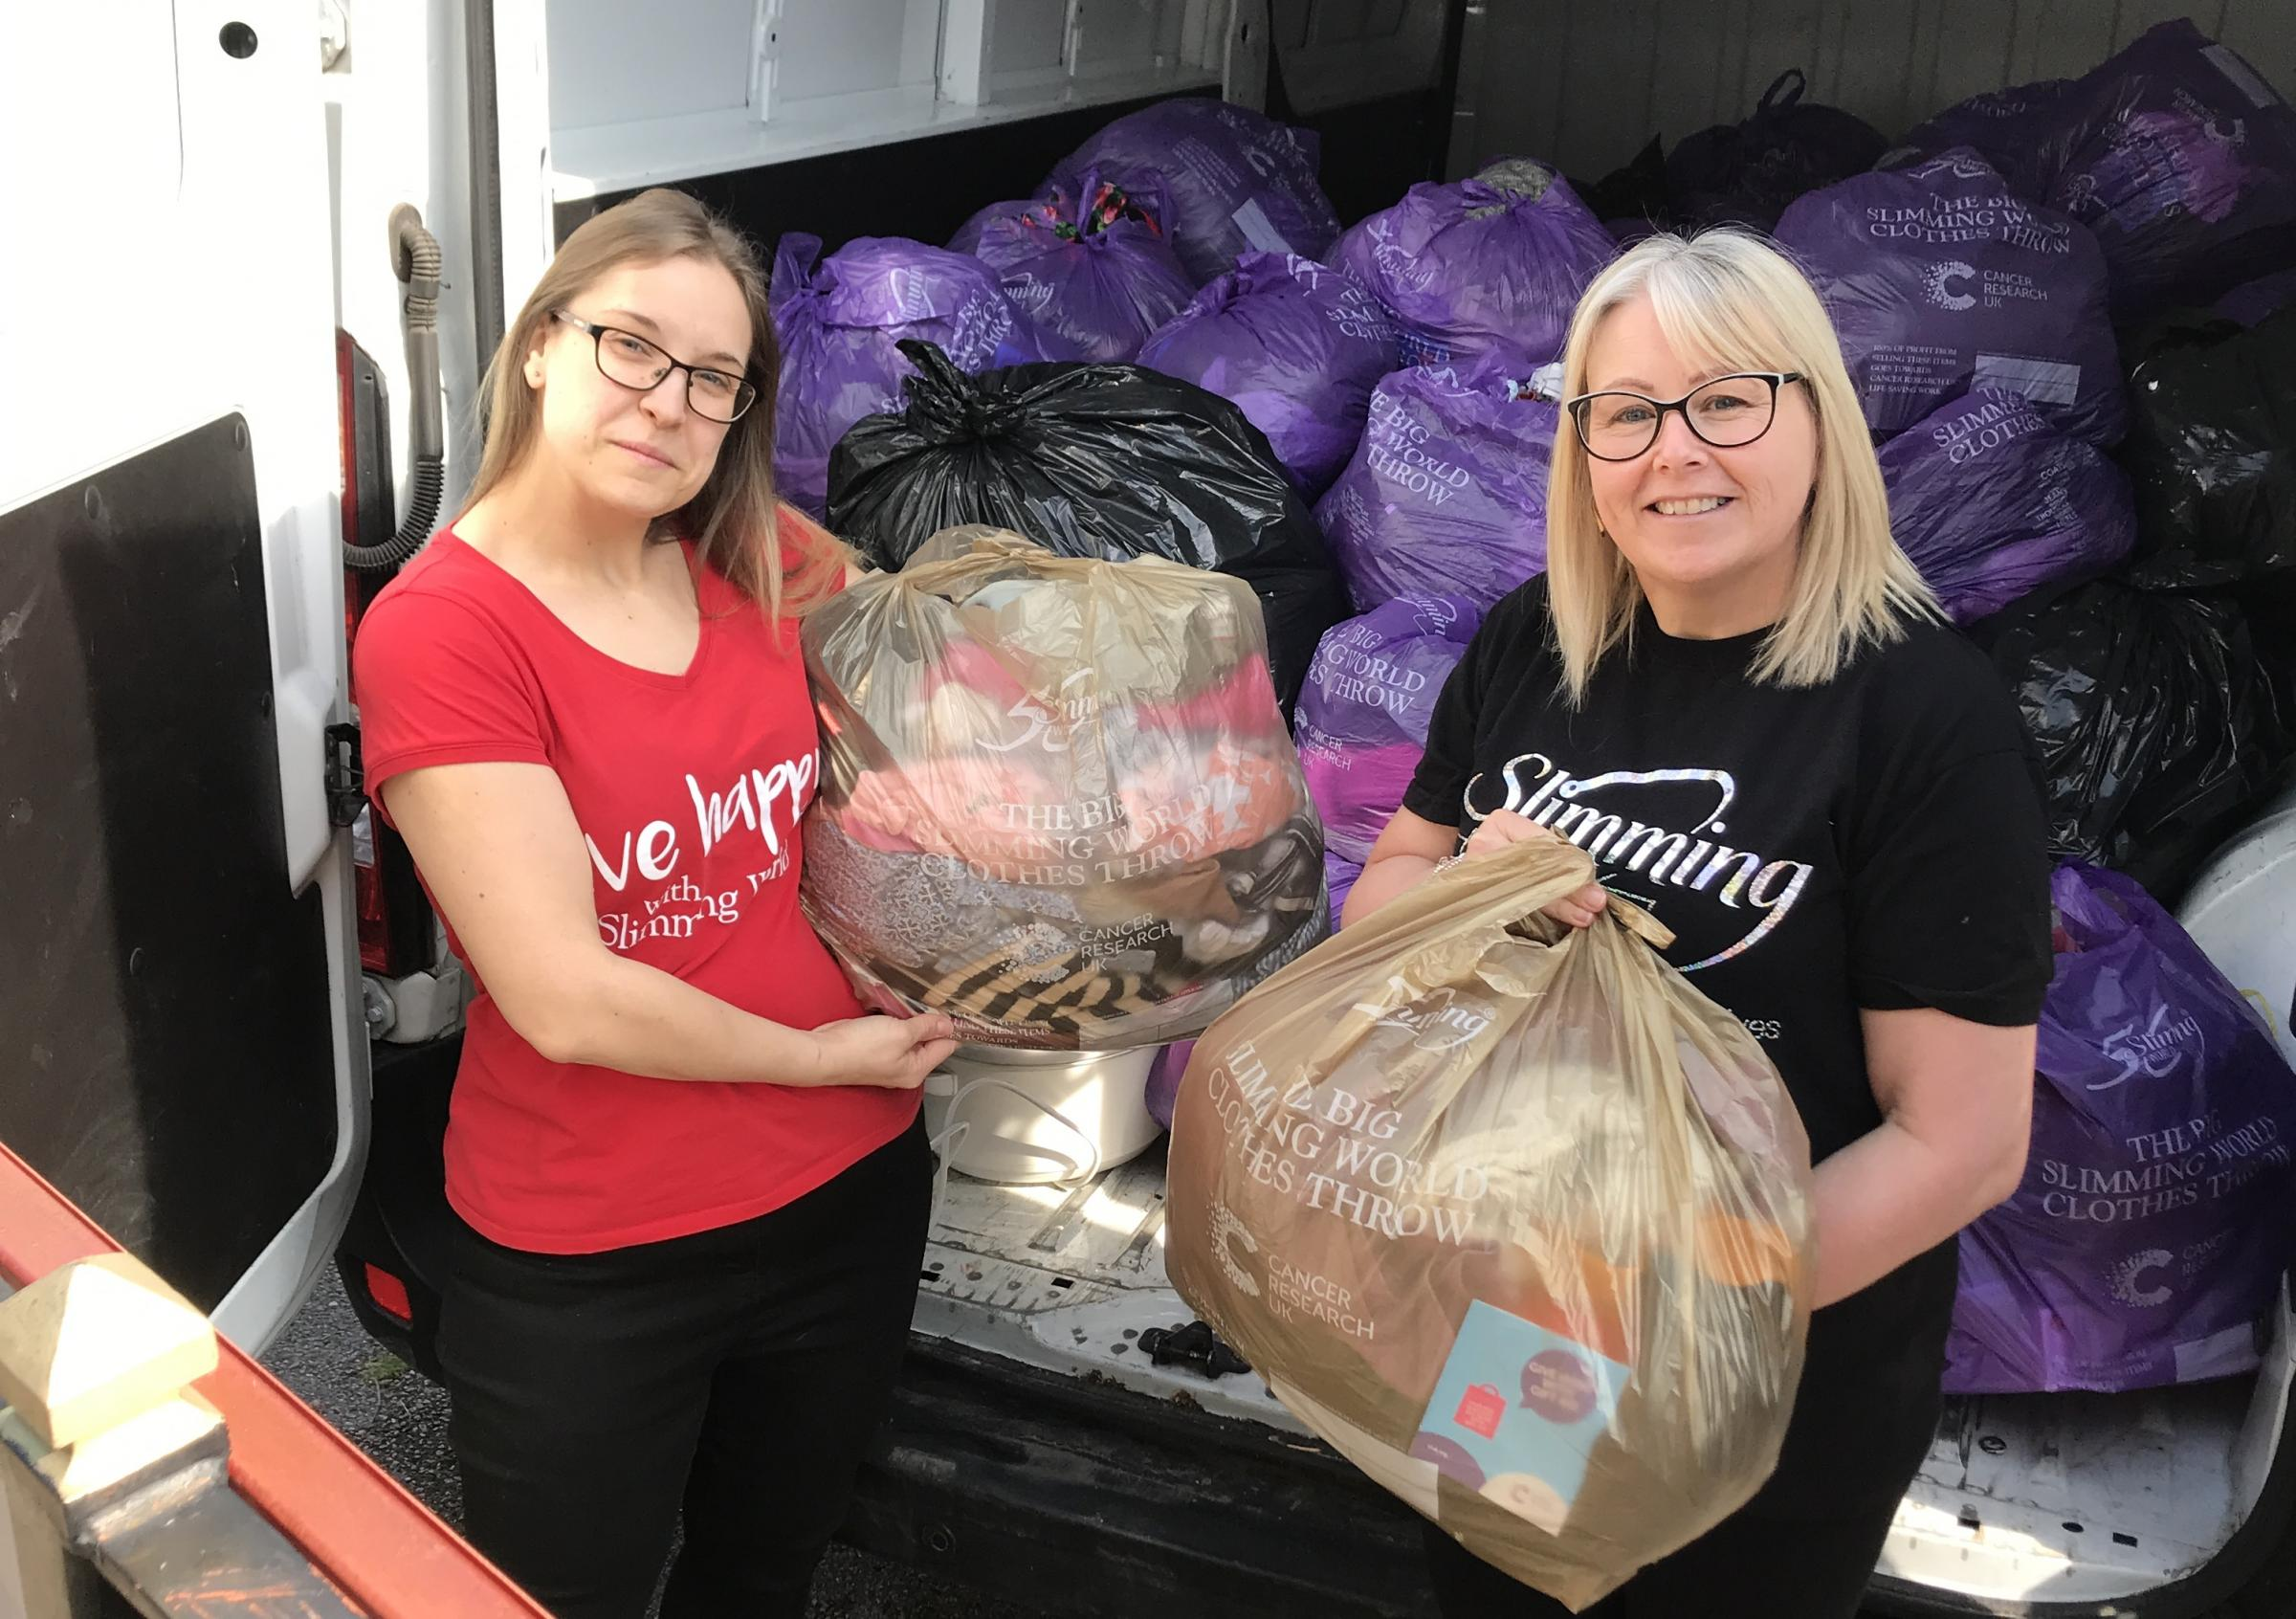 Tracy Cawthray (right) and Slimming World volunteer with the bags of now oversized clothes.